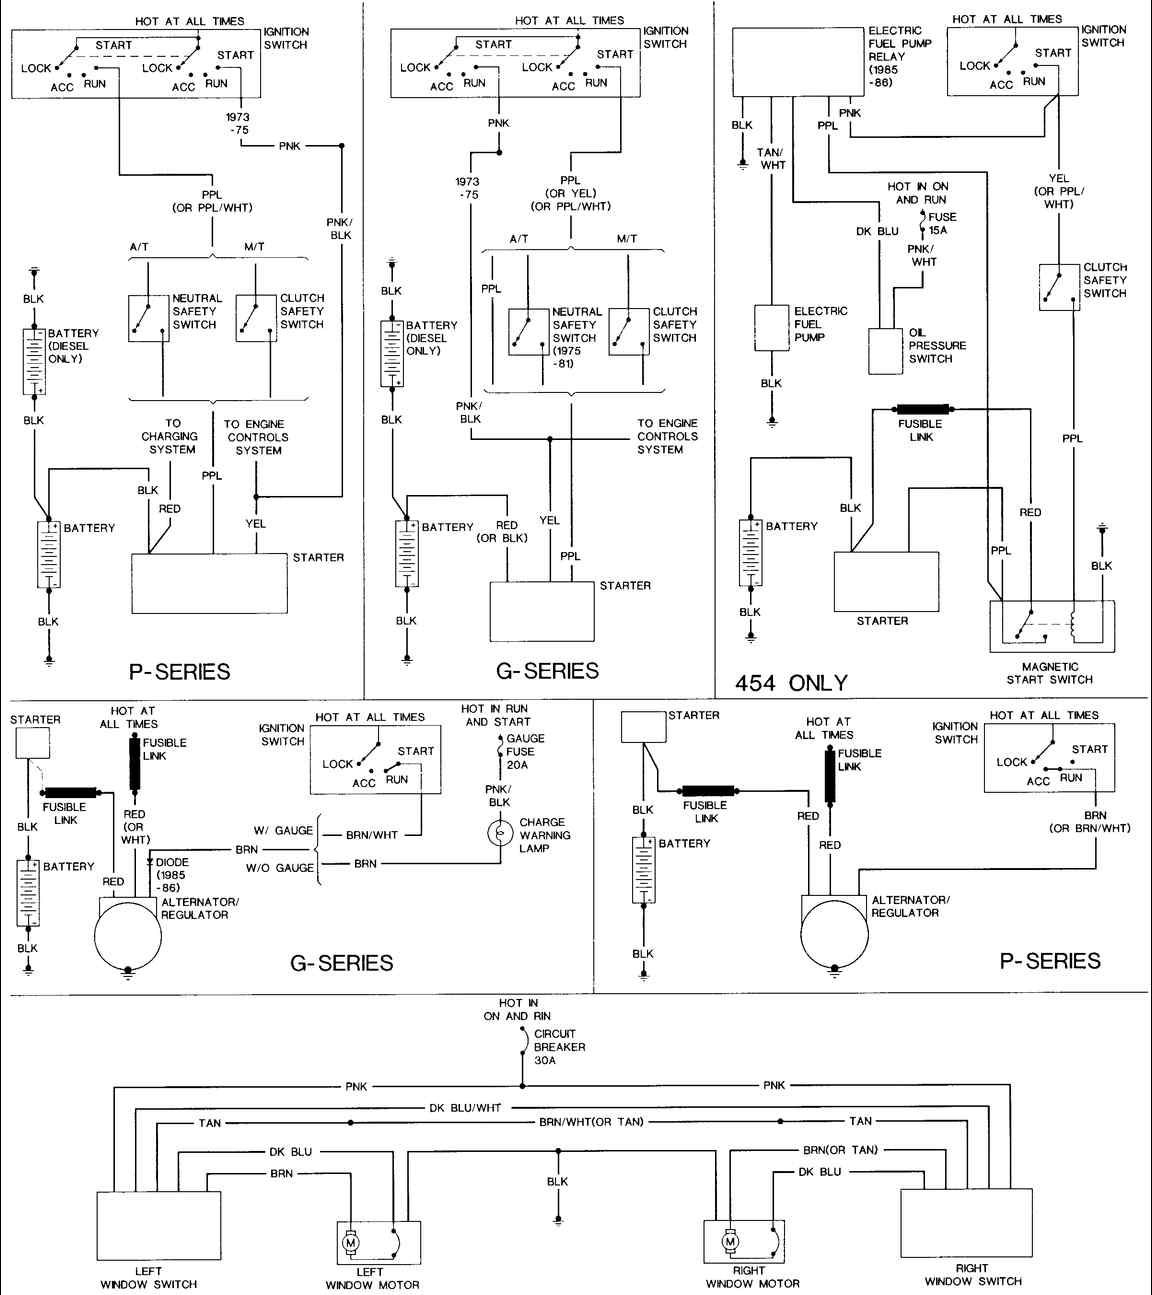 0c73623a181dc376dbb4777e2029d285 chevy 305 wiring diagram chevy 350 wiring diagram \u2022 wiring GM Factory Wiring Diagram at soozxer.org